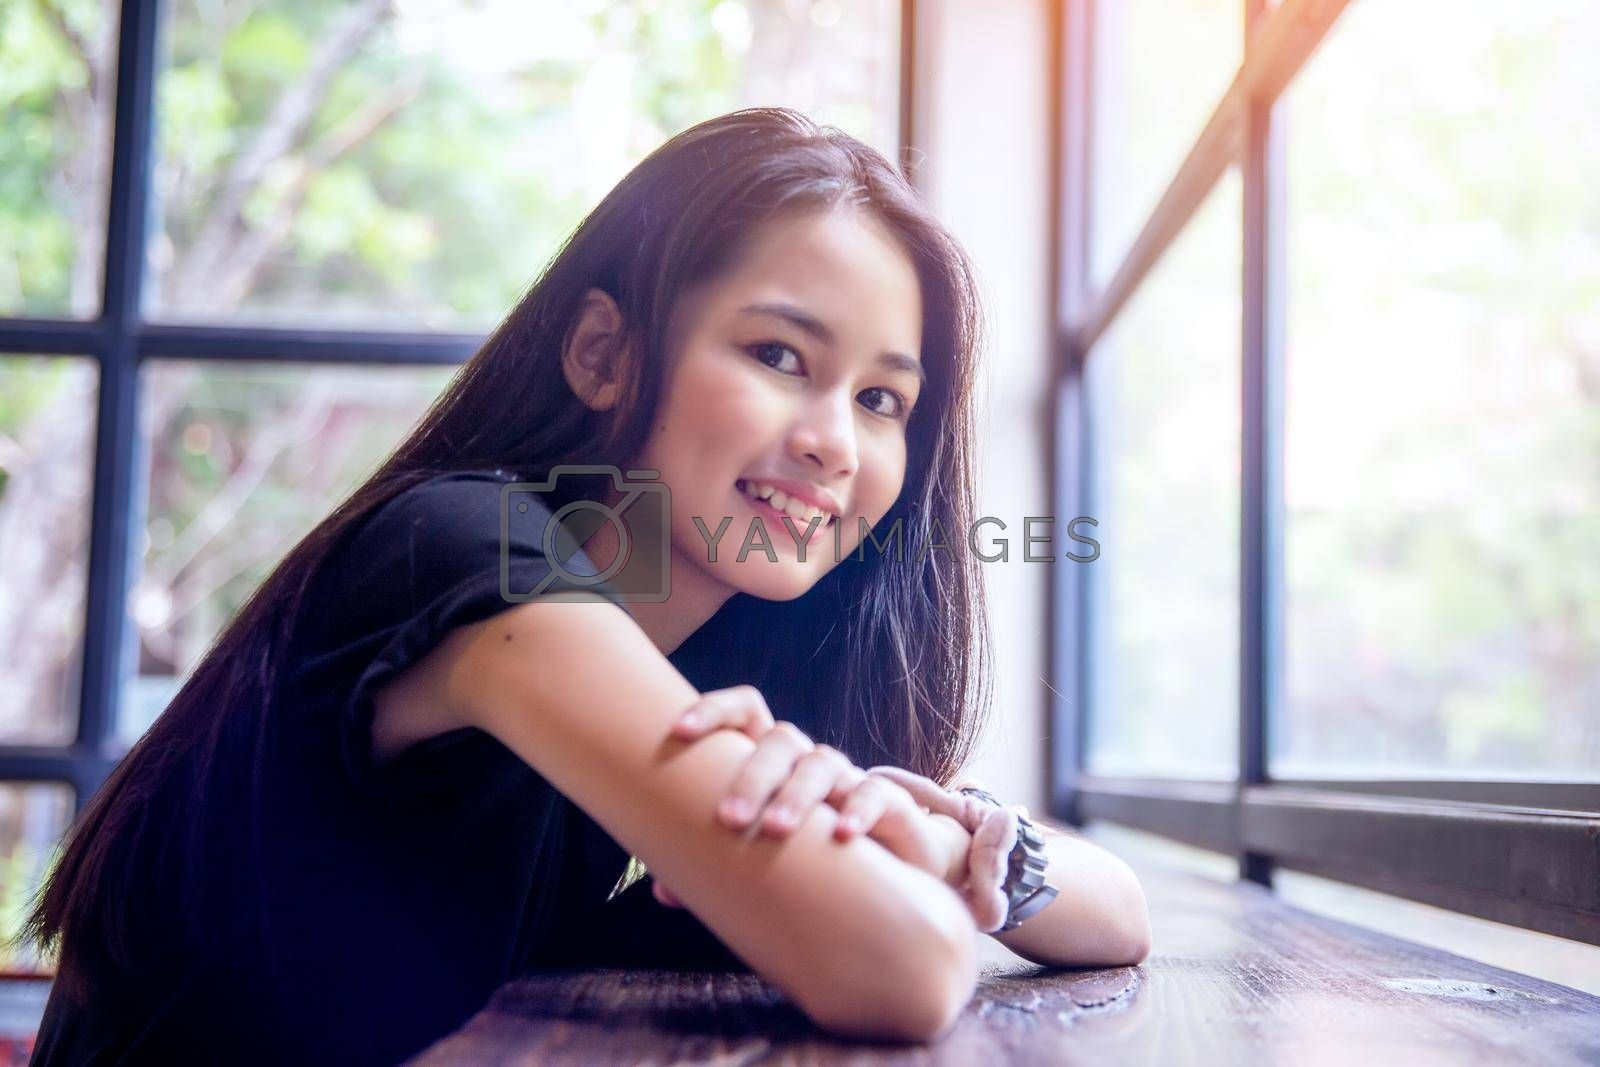 portrait of young charming beautiful girl with smile, authentic moments of real emotion.